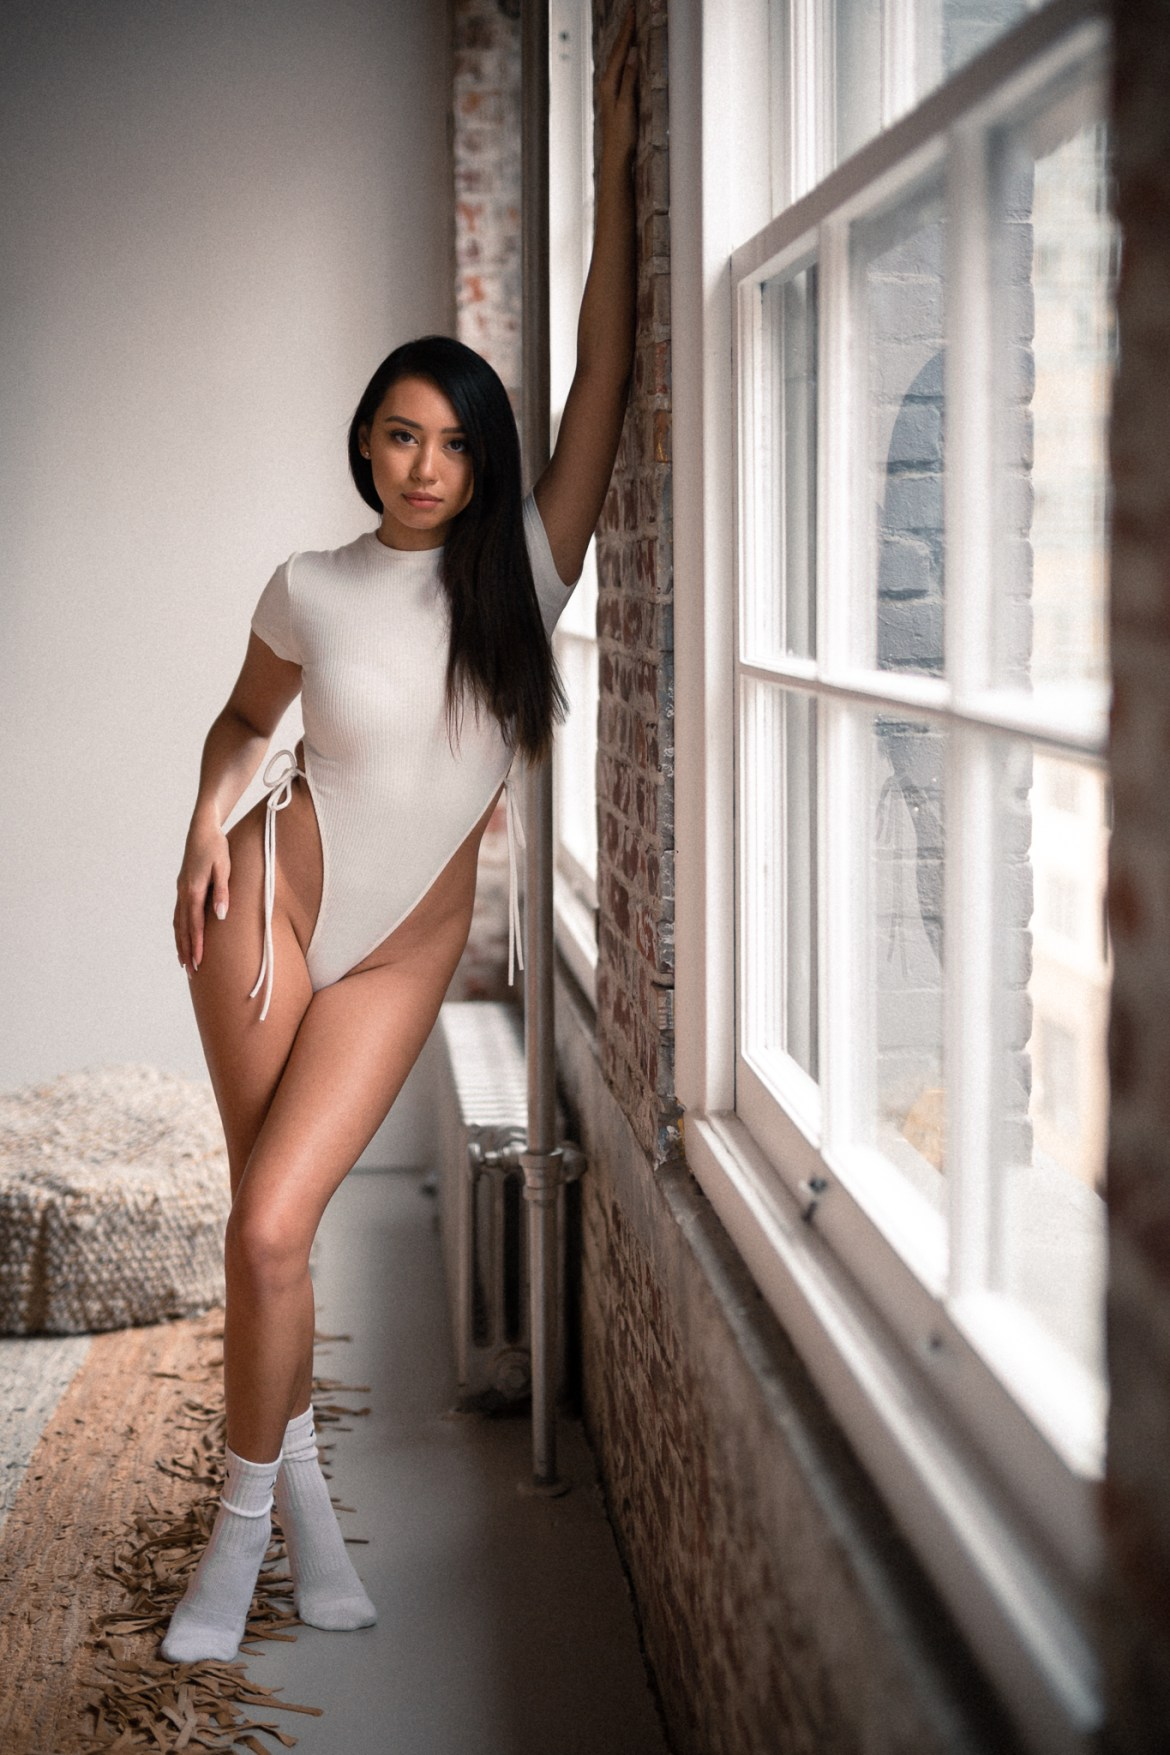 female, portrait, boudoir, windows, loft, natural, after lightroom presets, beautiful, bodysuit, socks